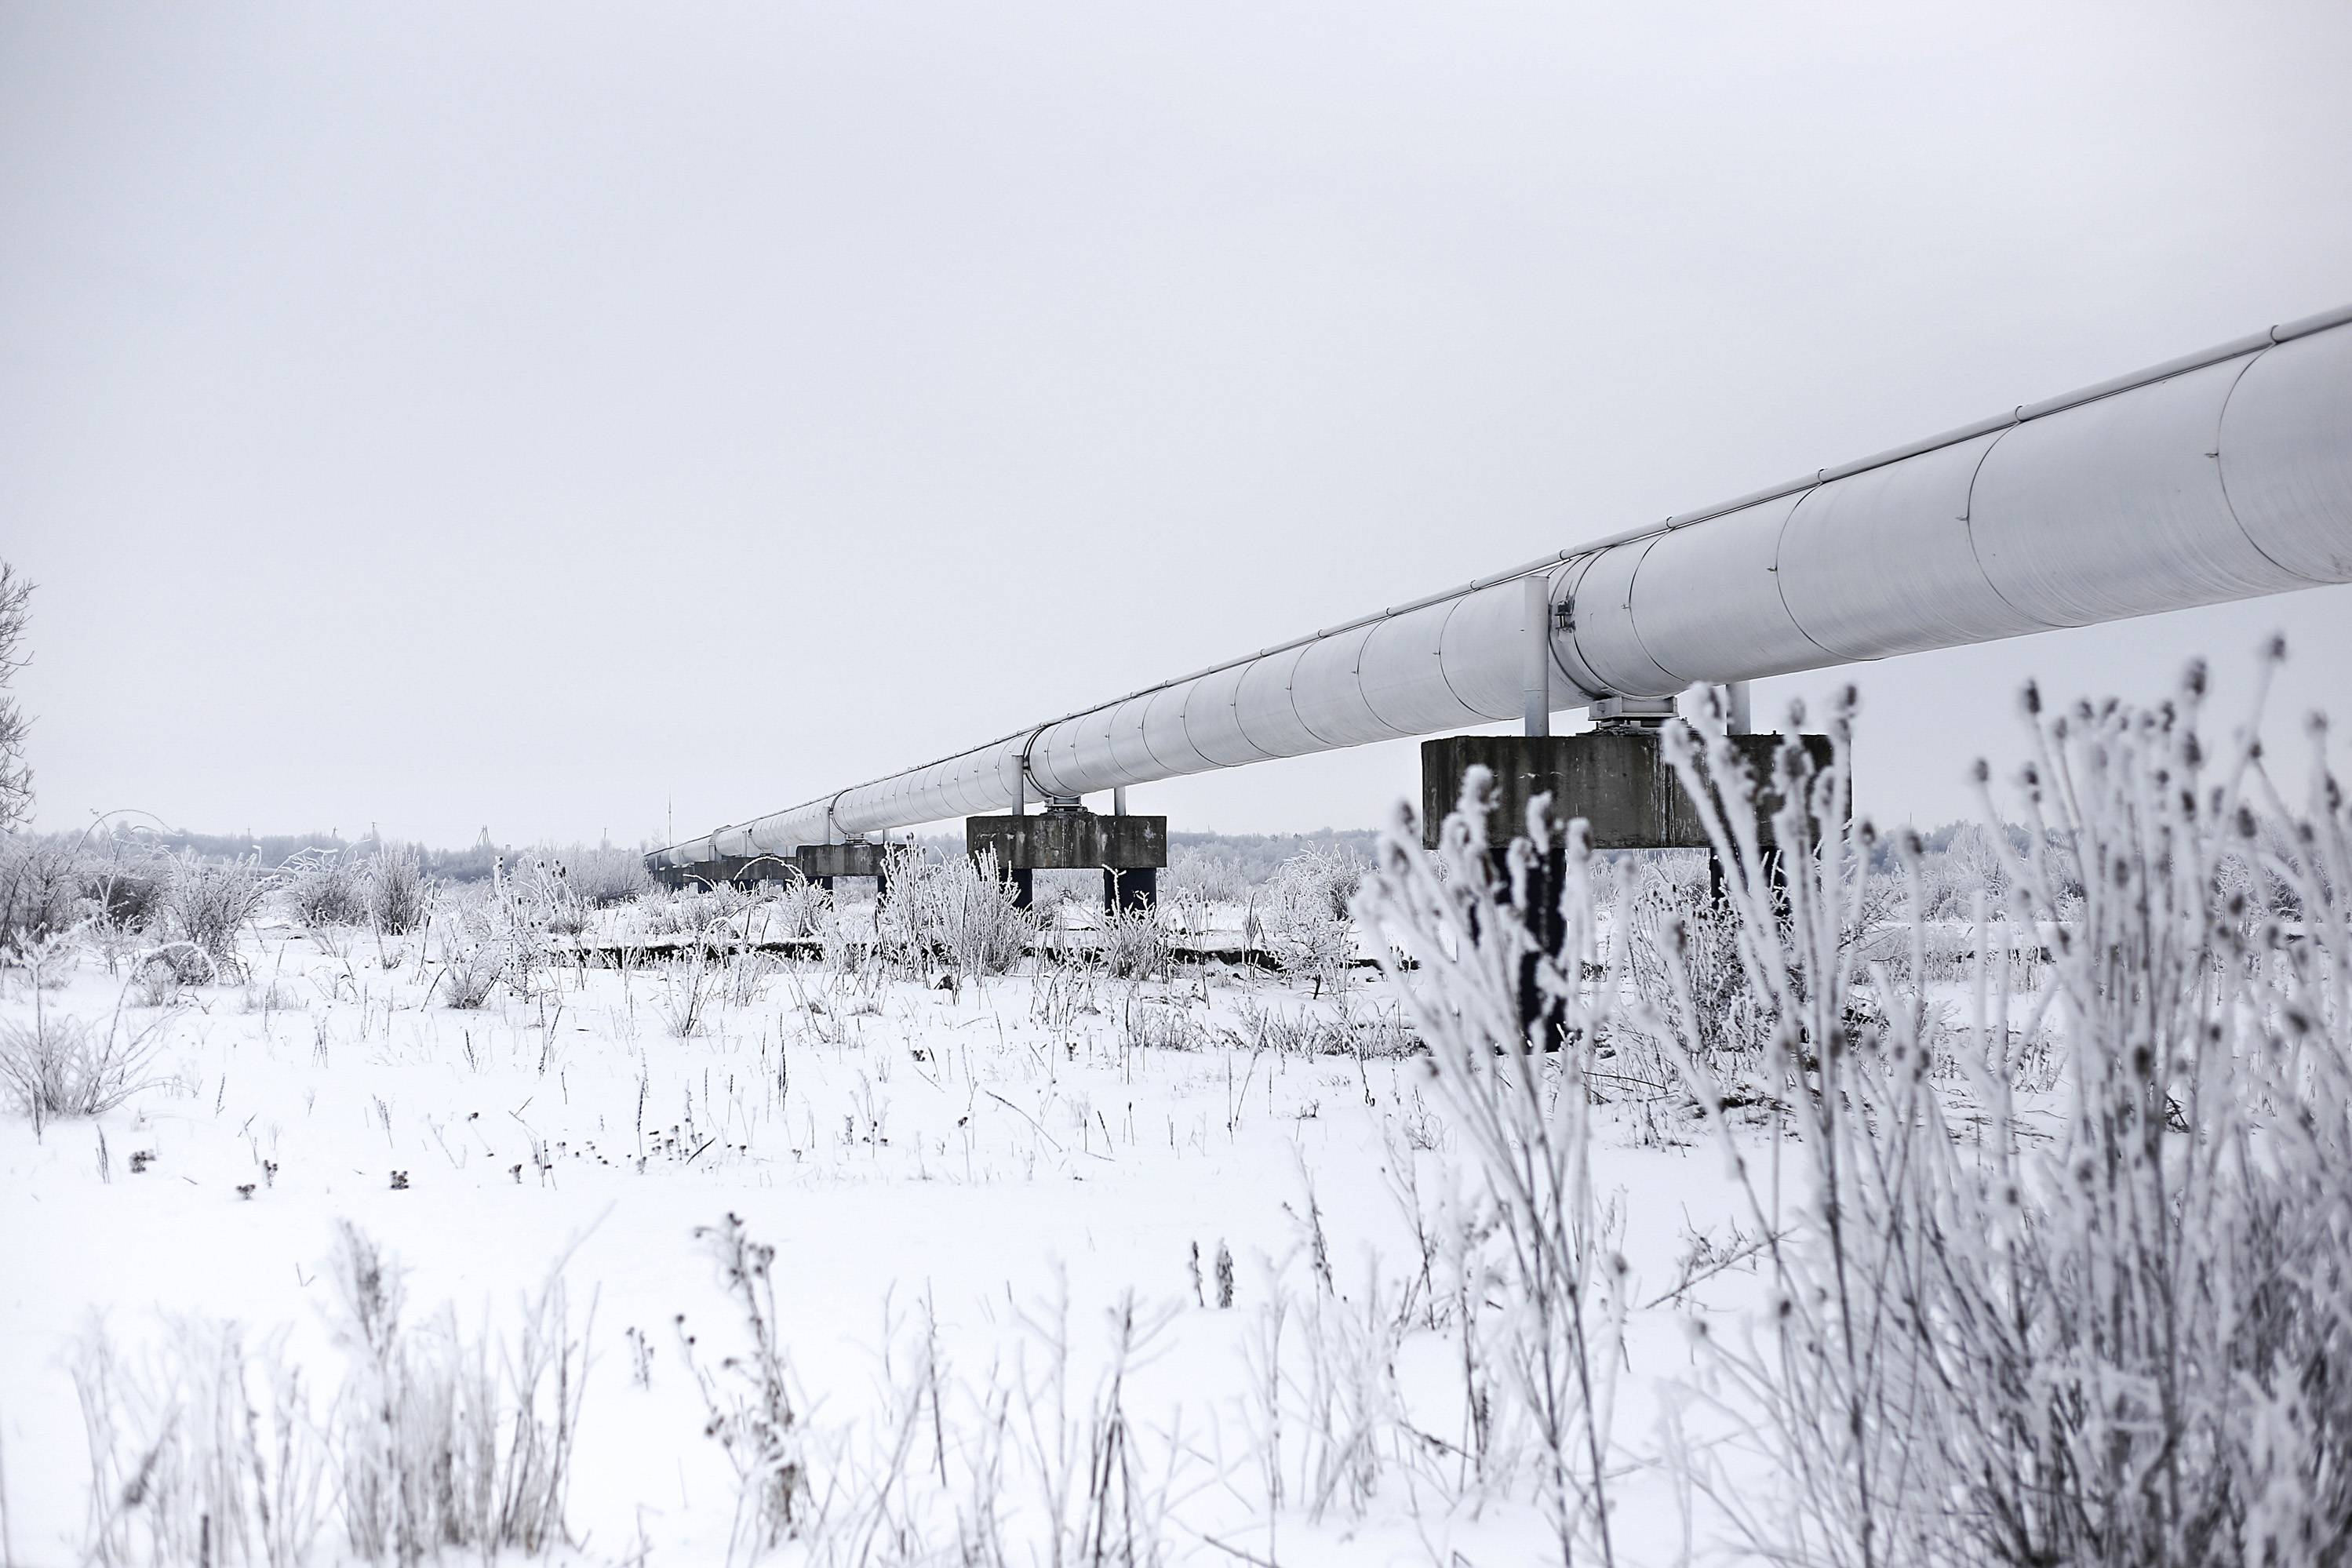 A section of the Urengoy-Pomary-Uzhgorod pipeline, also known as the West-Siberian Pipeline, or the Trans-Siberian Pipeline — Russia's main natural gas export pipeline — stands near Ivano-Frankvisk, Ukraine.